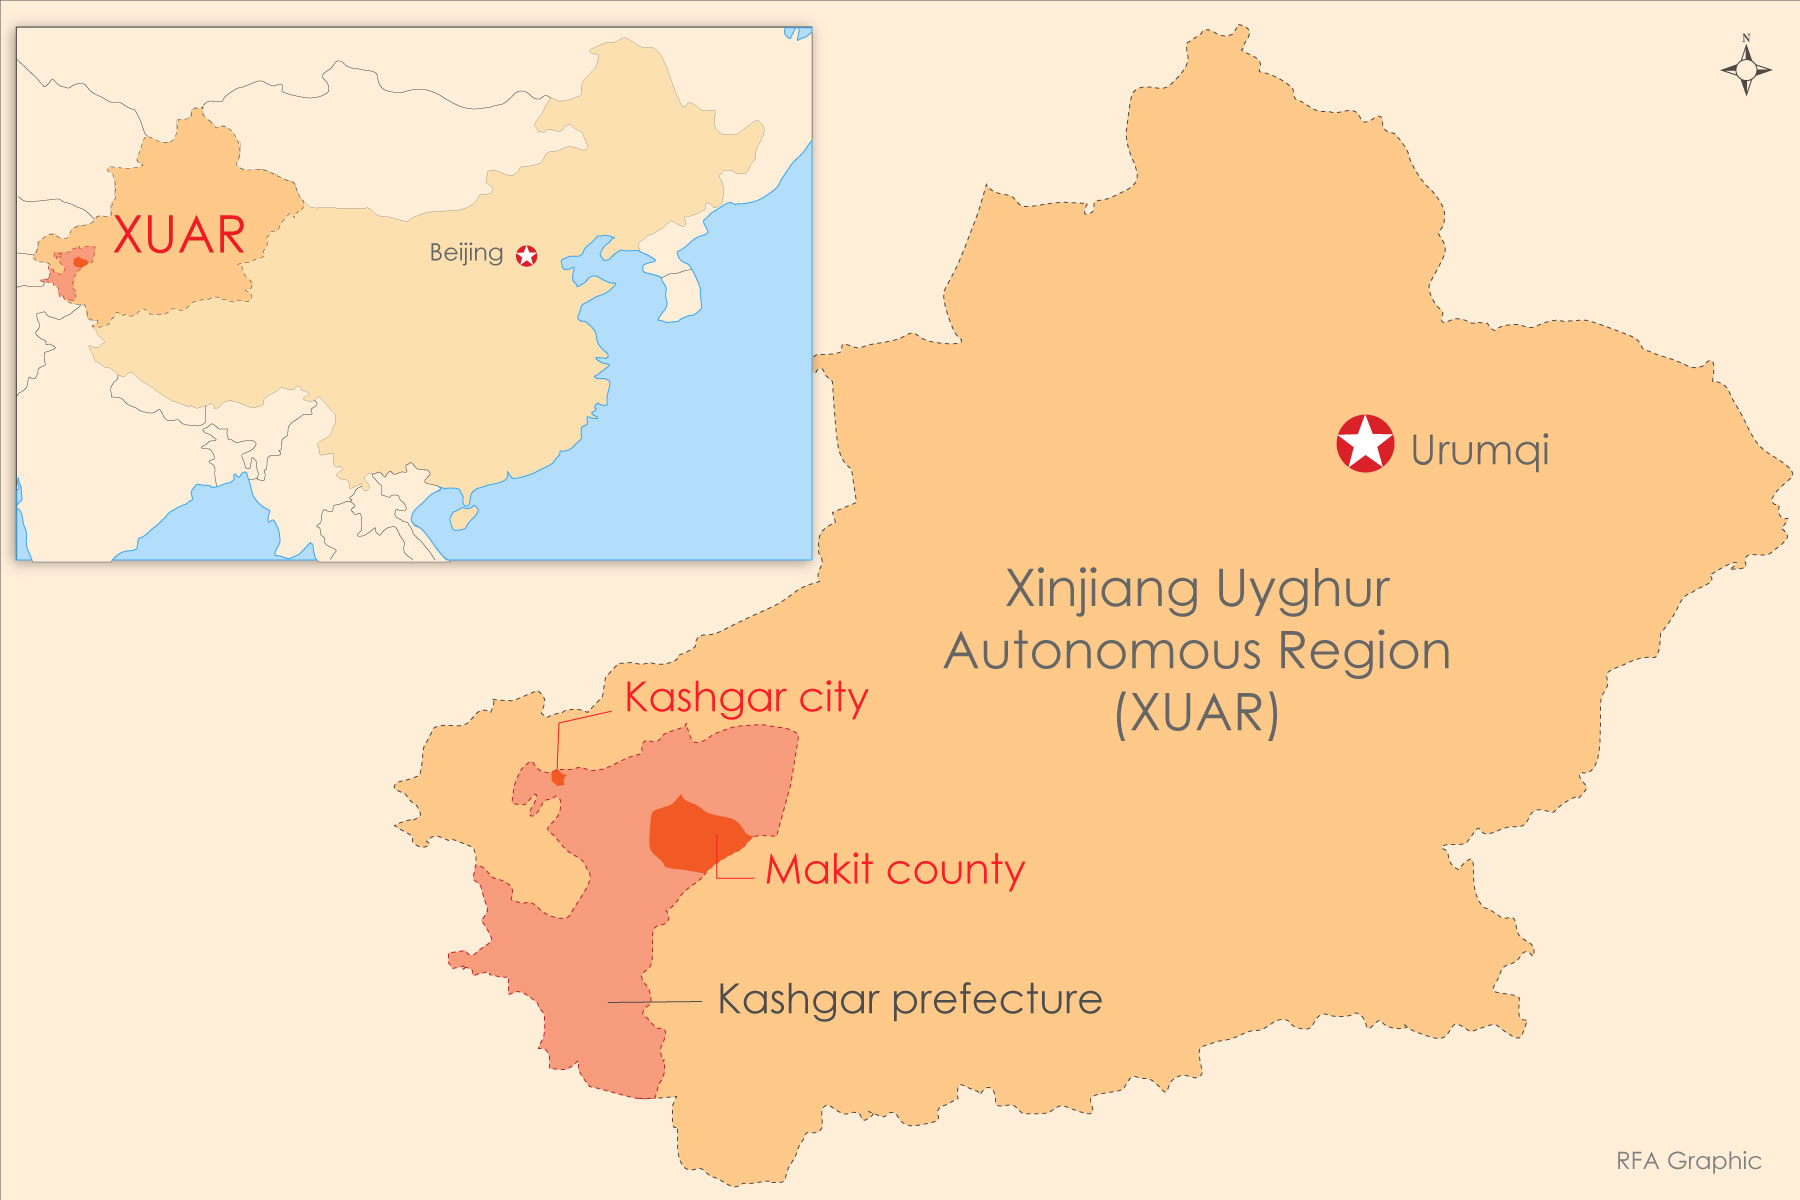 A map shows Kashgar city and neighboring Makit county in northwest China's Xinjiang Uyghur Autonomous Region (XUAR).